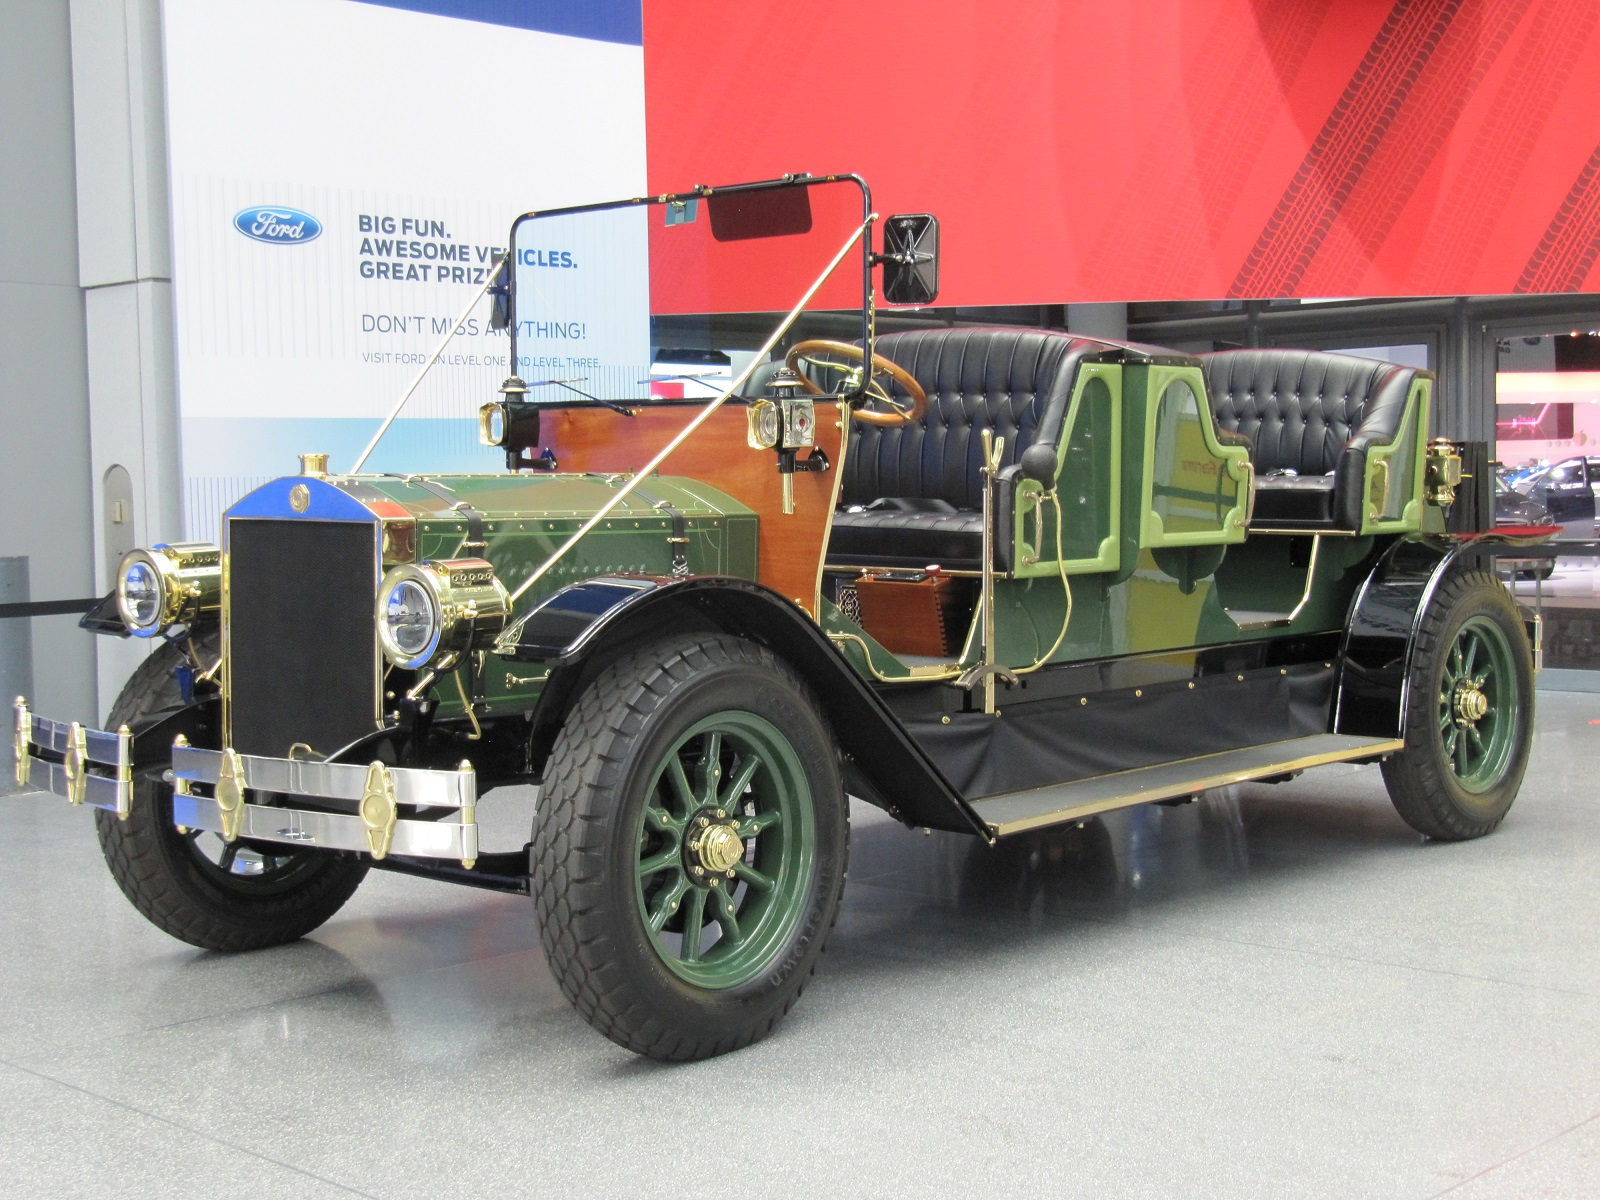 Electric Vintage Car Proposed To Replace Nyc Horse Carriages New York Auto Show